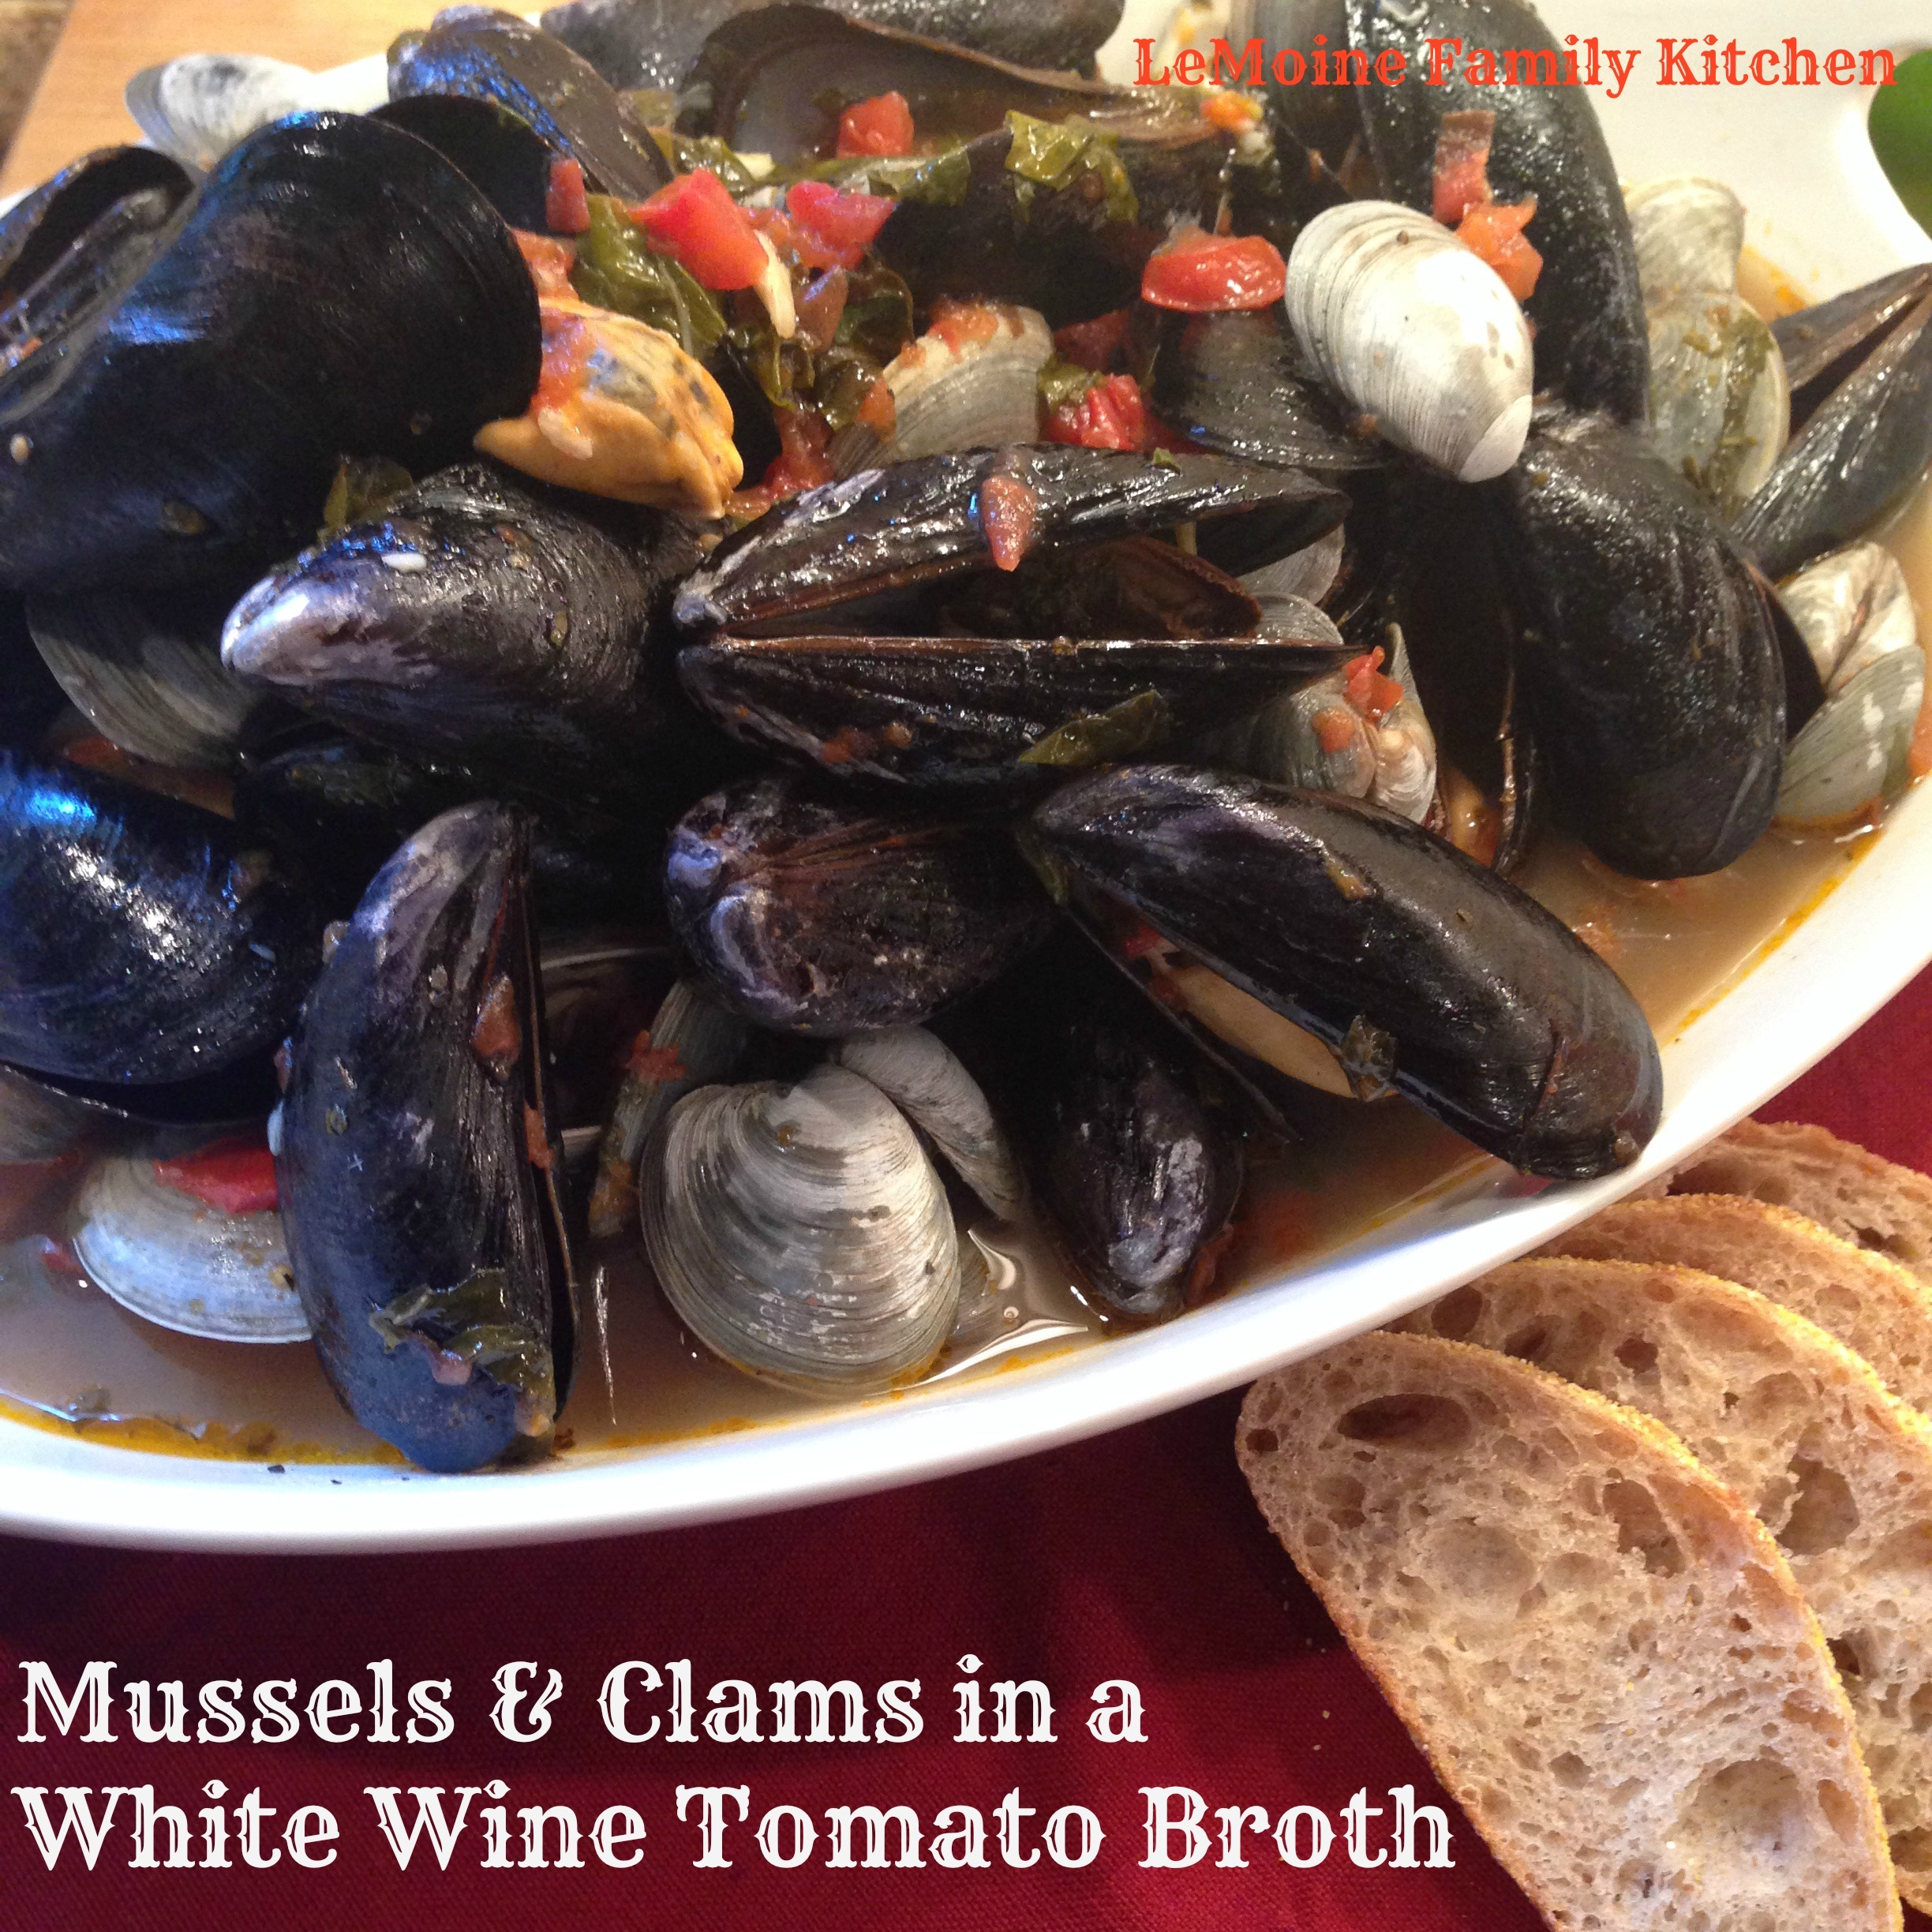 Mussels & Clams in a White Wine Tomato Broth